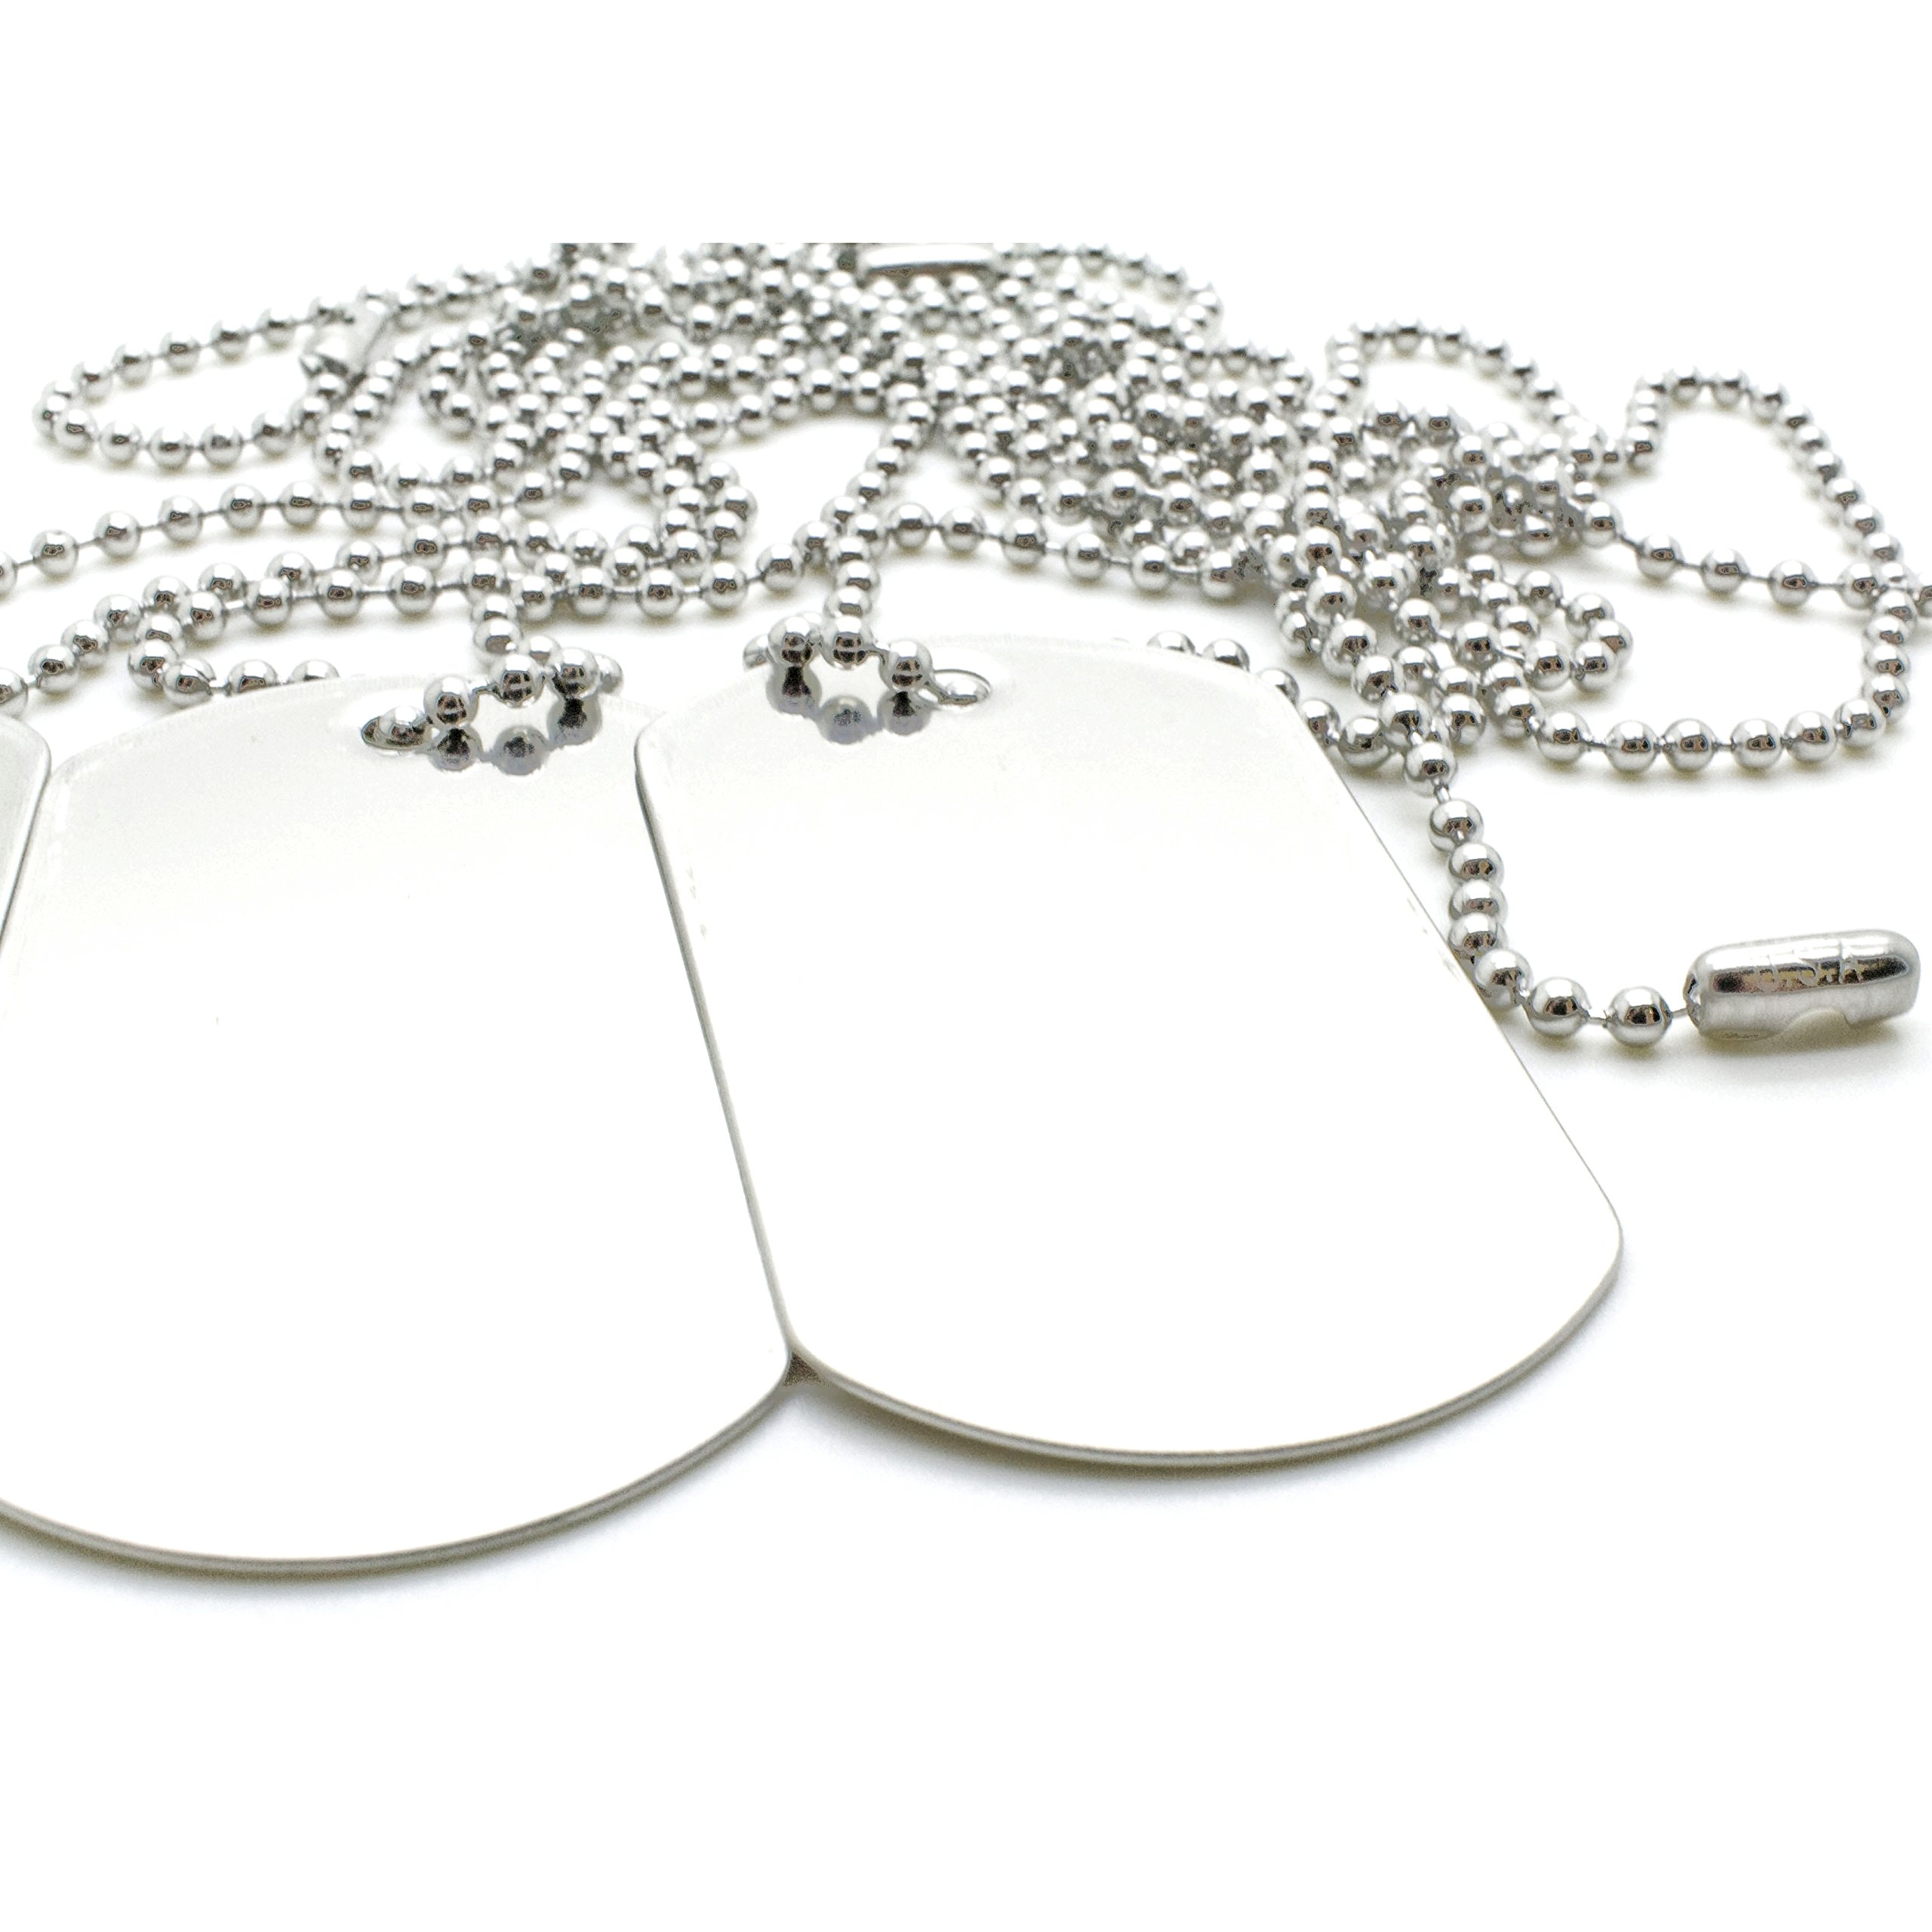 100 COMBO Matte Stainless Steel Military spec Dog Tags - BLANK with Stainless Steel Chains (100 dog tags w/ 30'' chains) by OnDepot.com